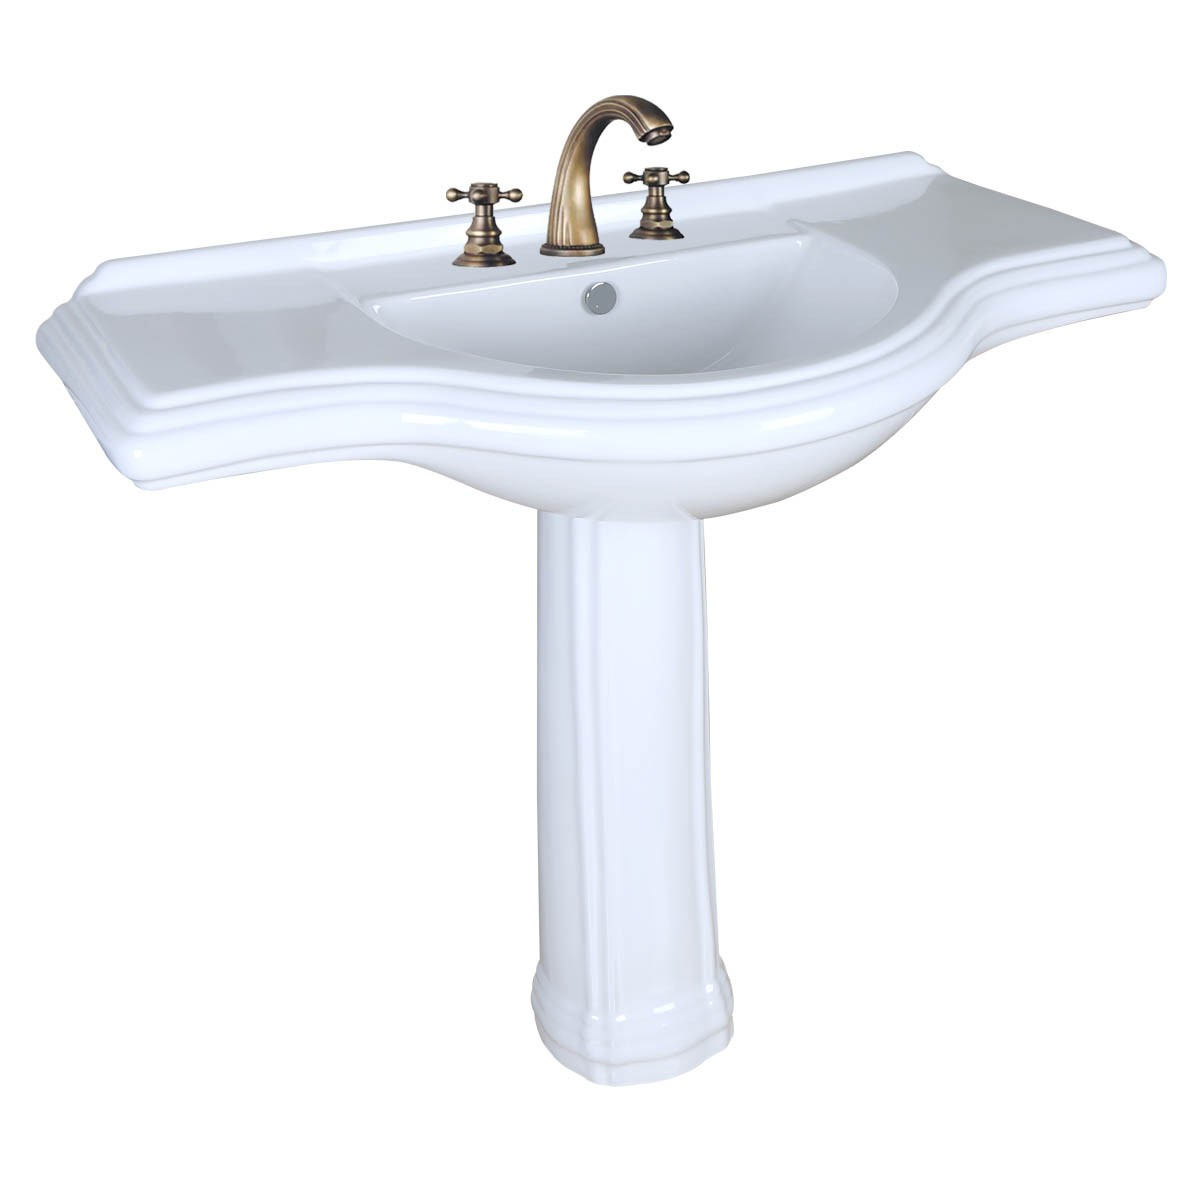 horrible with modern great of sink to charm bathroom image cerchio larger rc together sinks size see pedestal click large in